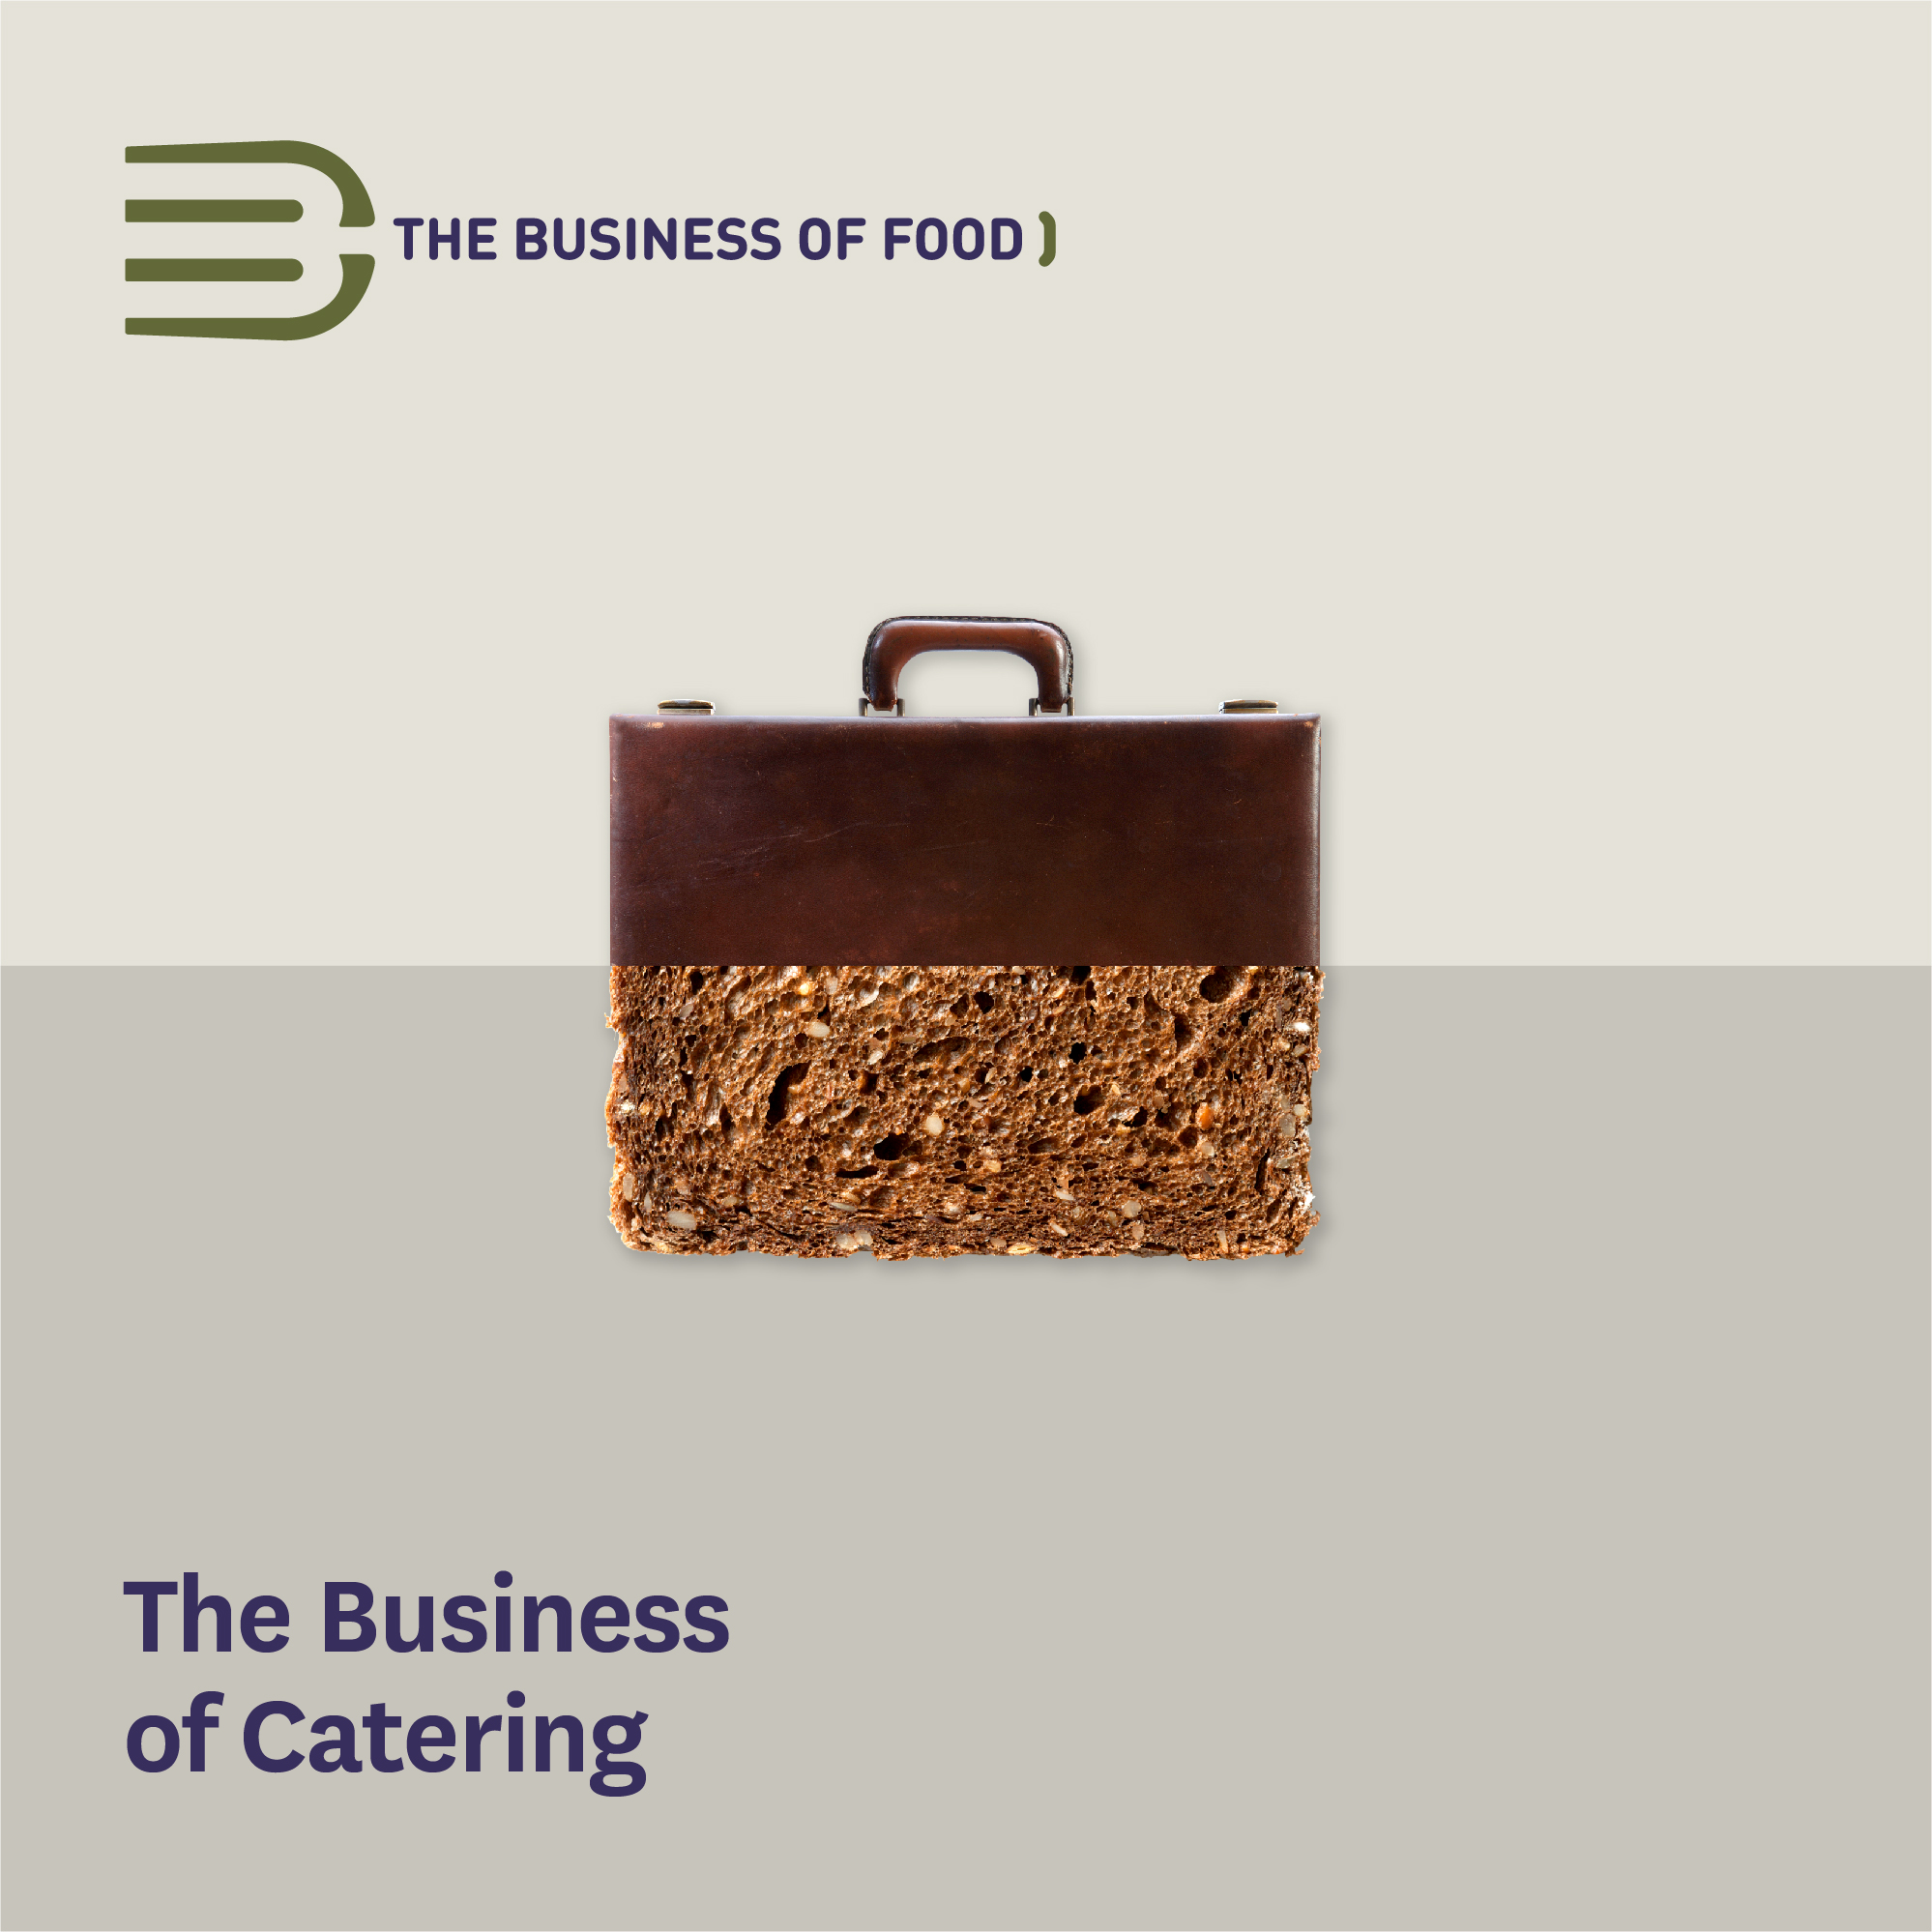 The Business of Catering (Oct) provided by NOTS.ie